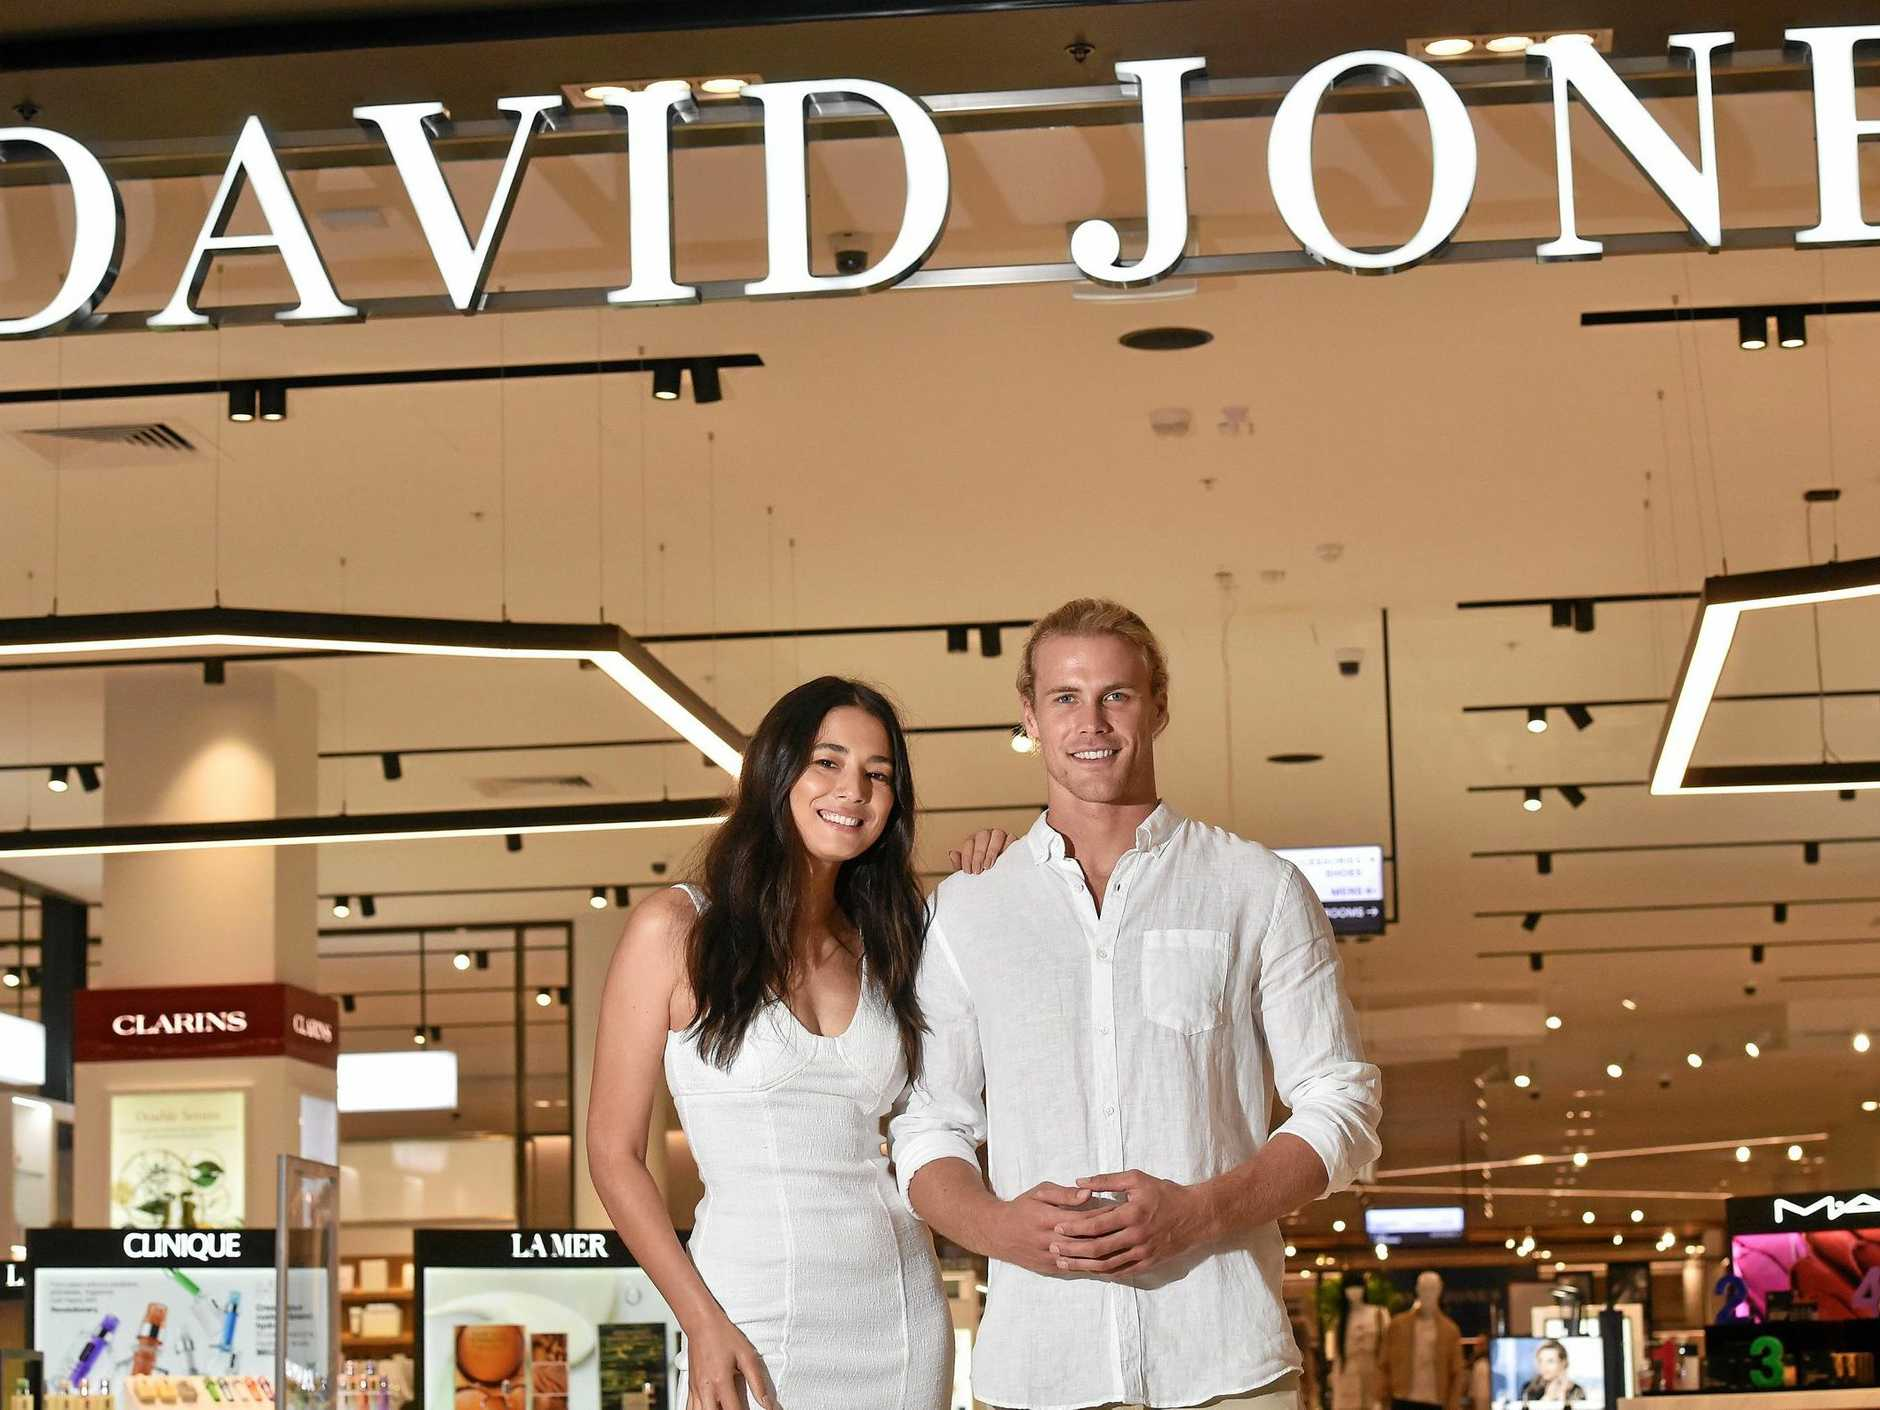 Jett Kenny and Jessica Gomes will welcome customers at the new David Jones this morning as part of the Sunshine Plaza's grand reveal of its $440 million redevelopment.